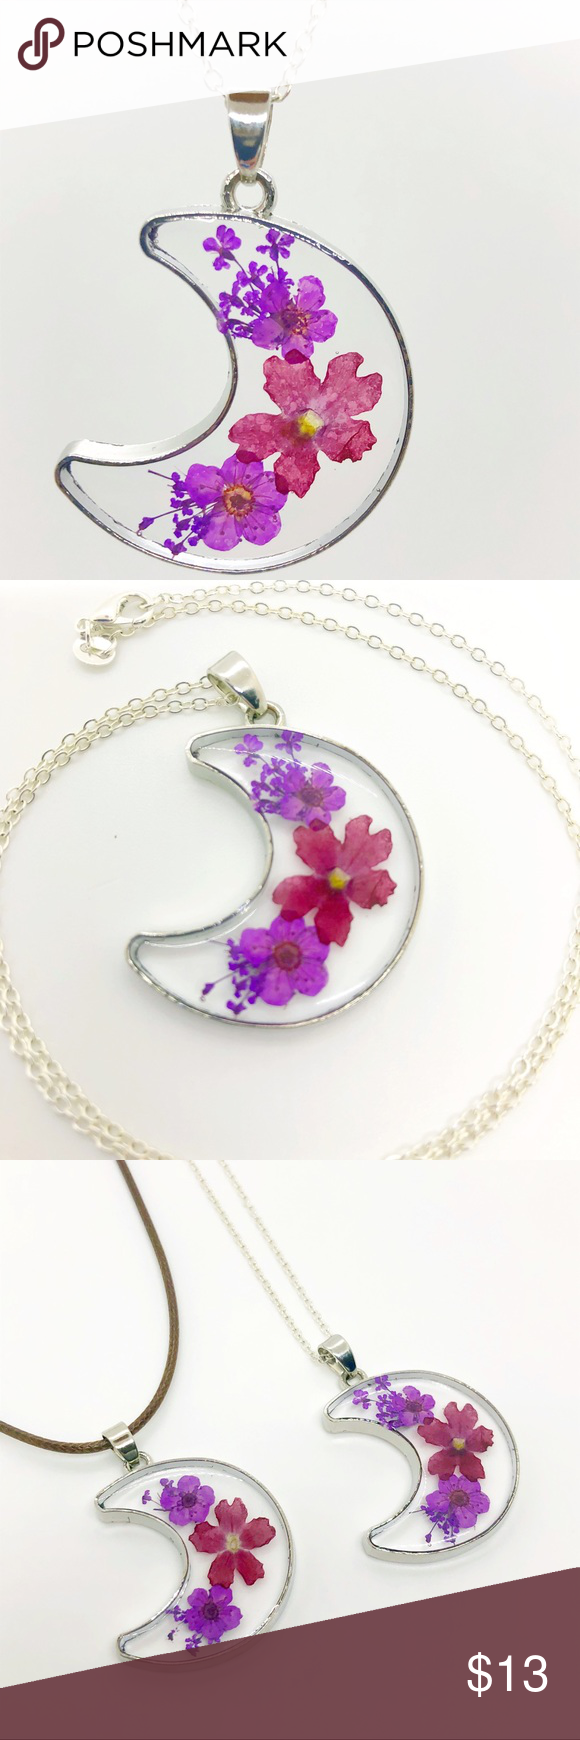 Real Flower Necklace Crescent Moon Pressed Flower Such a beautiful Hickory Moon piece These necklaces are handmade with real pressed dried flowers encased in resin Each p...